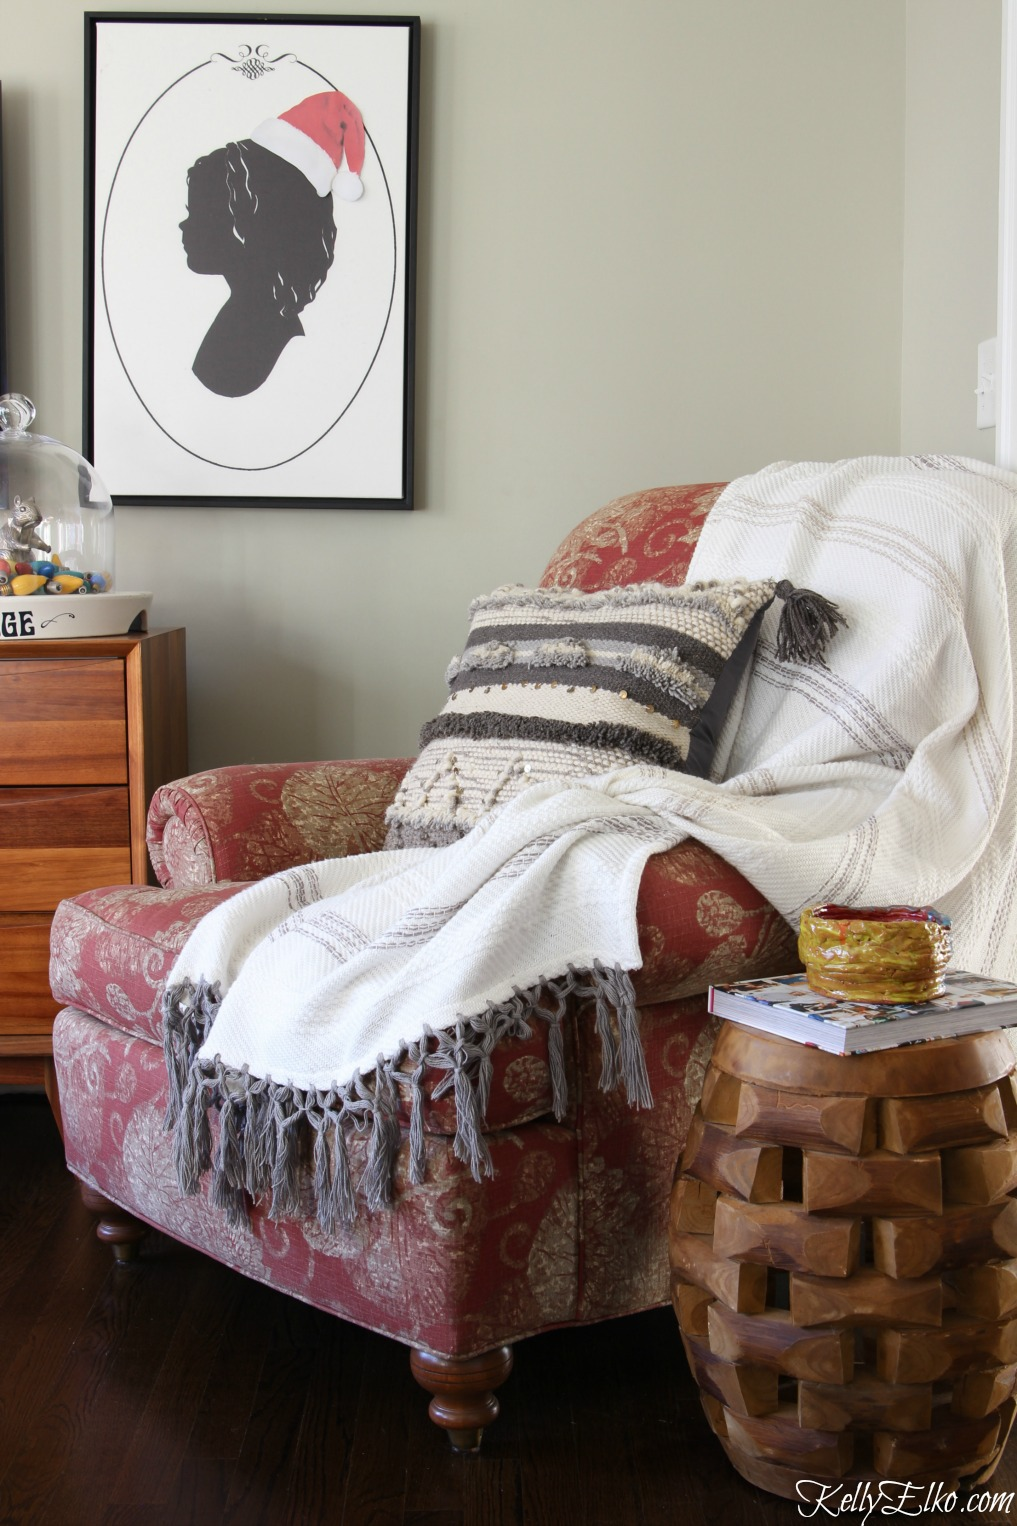 Love this cozy chair with throw and Moroccan pillow and the silhouette art with a cute little Santa hat kellyelko.com